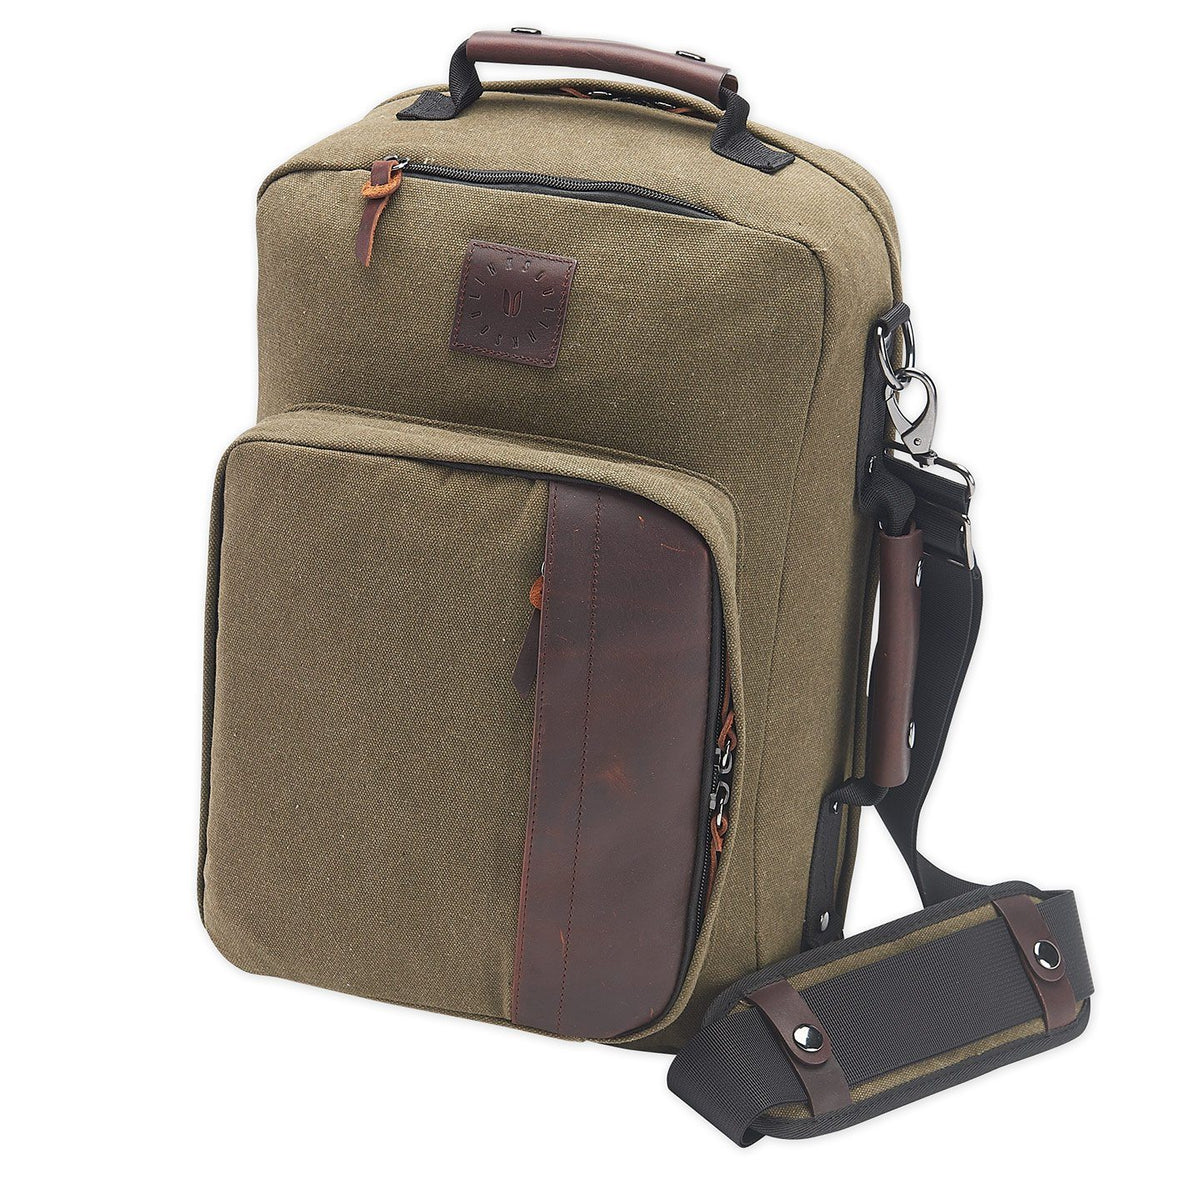 Linksoul Hybrid Messenger Bag